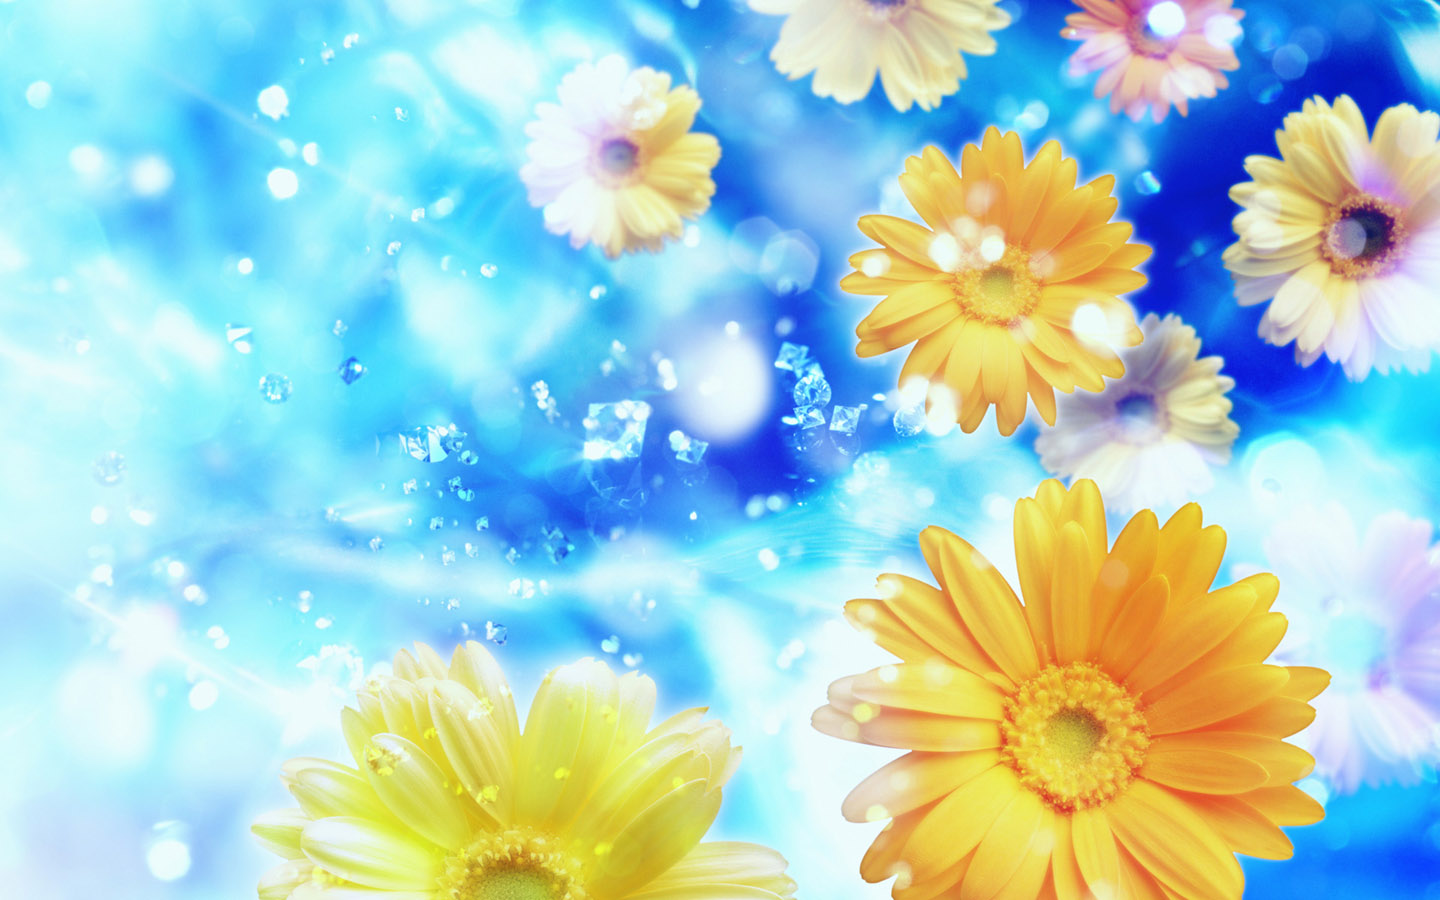 Wallpapers   HD Desktop Wallpapers Online Flower 1440x900